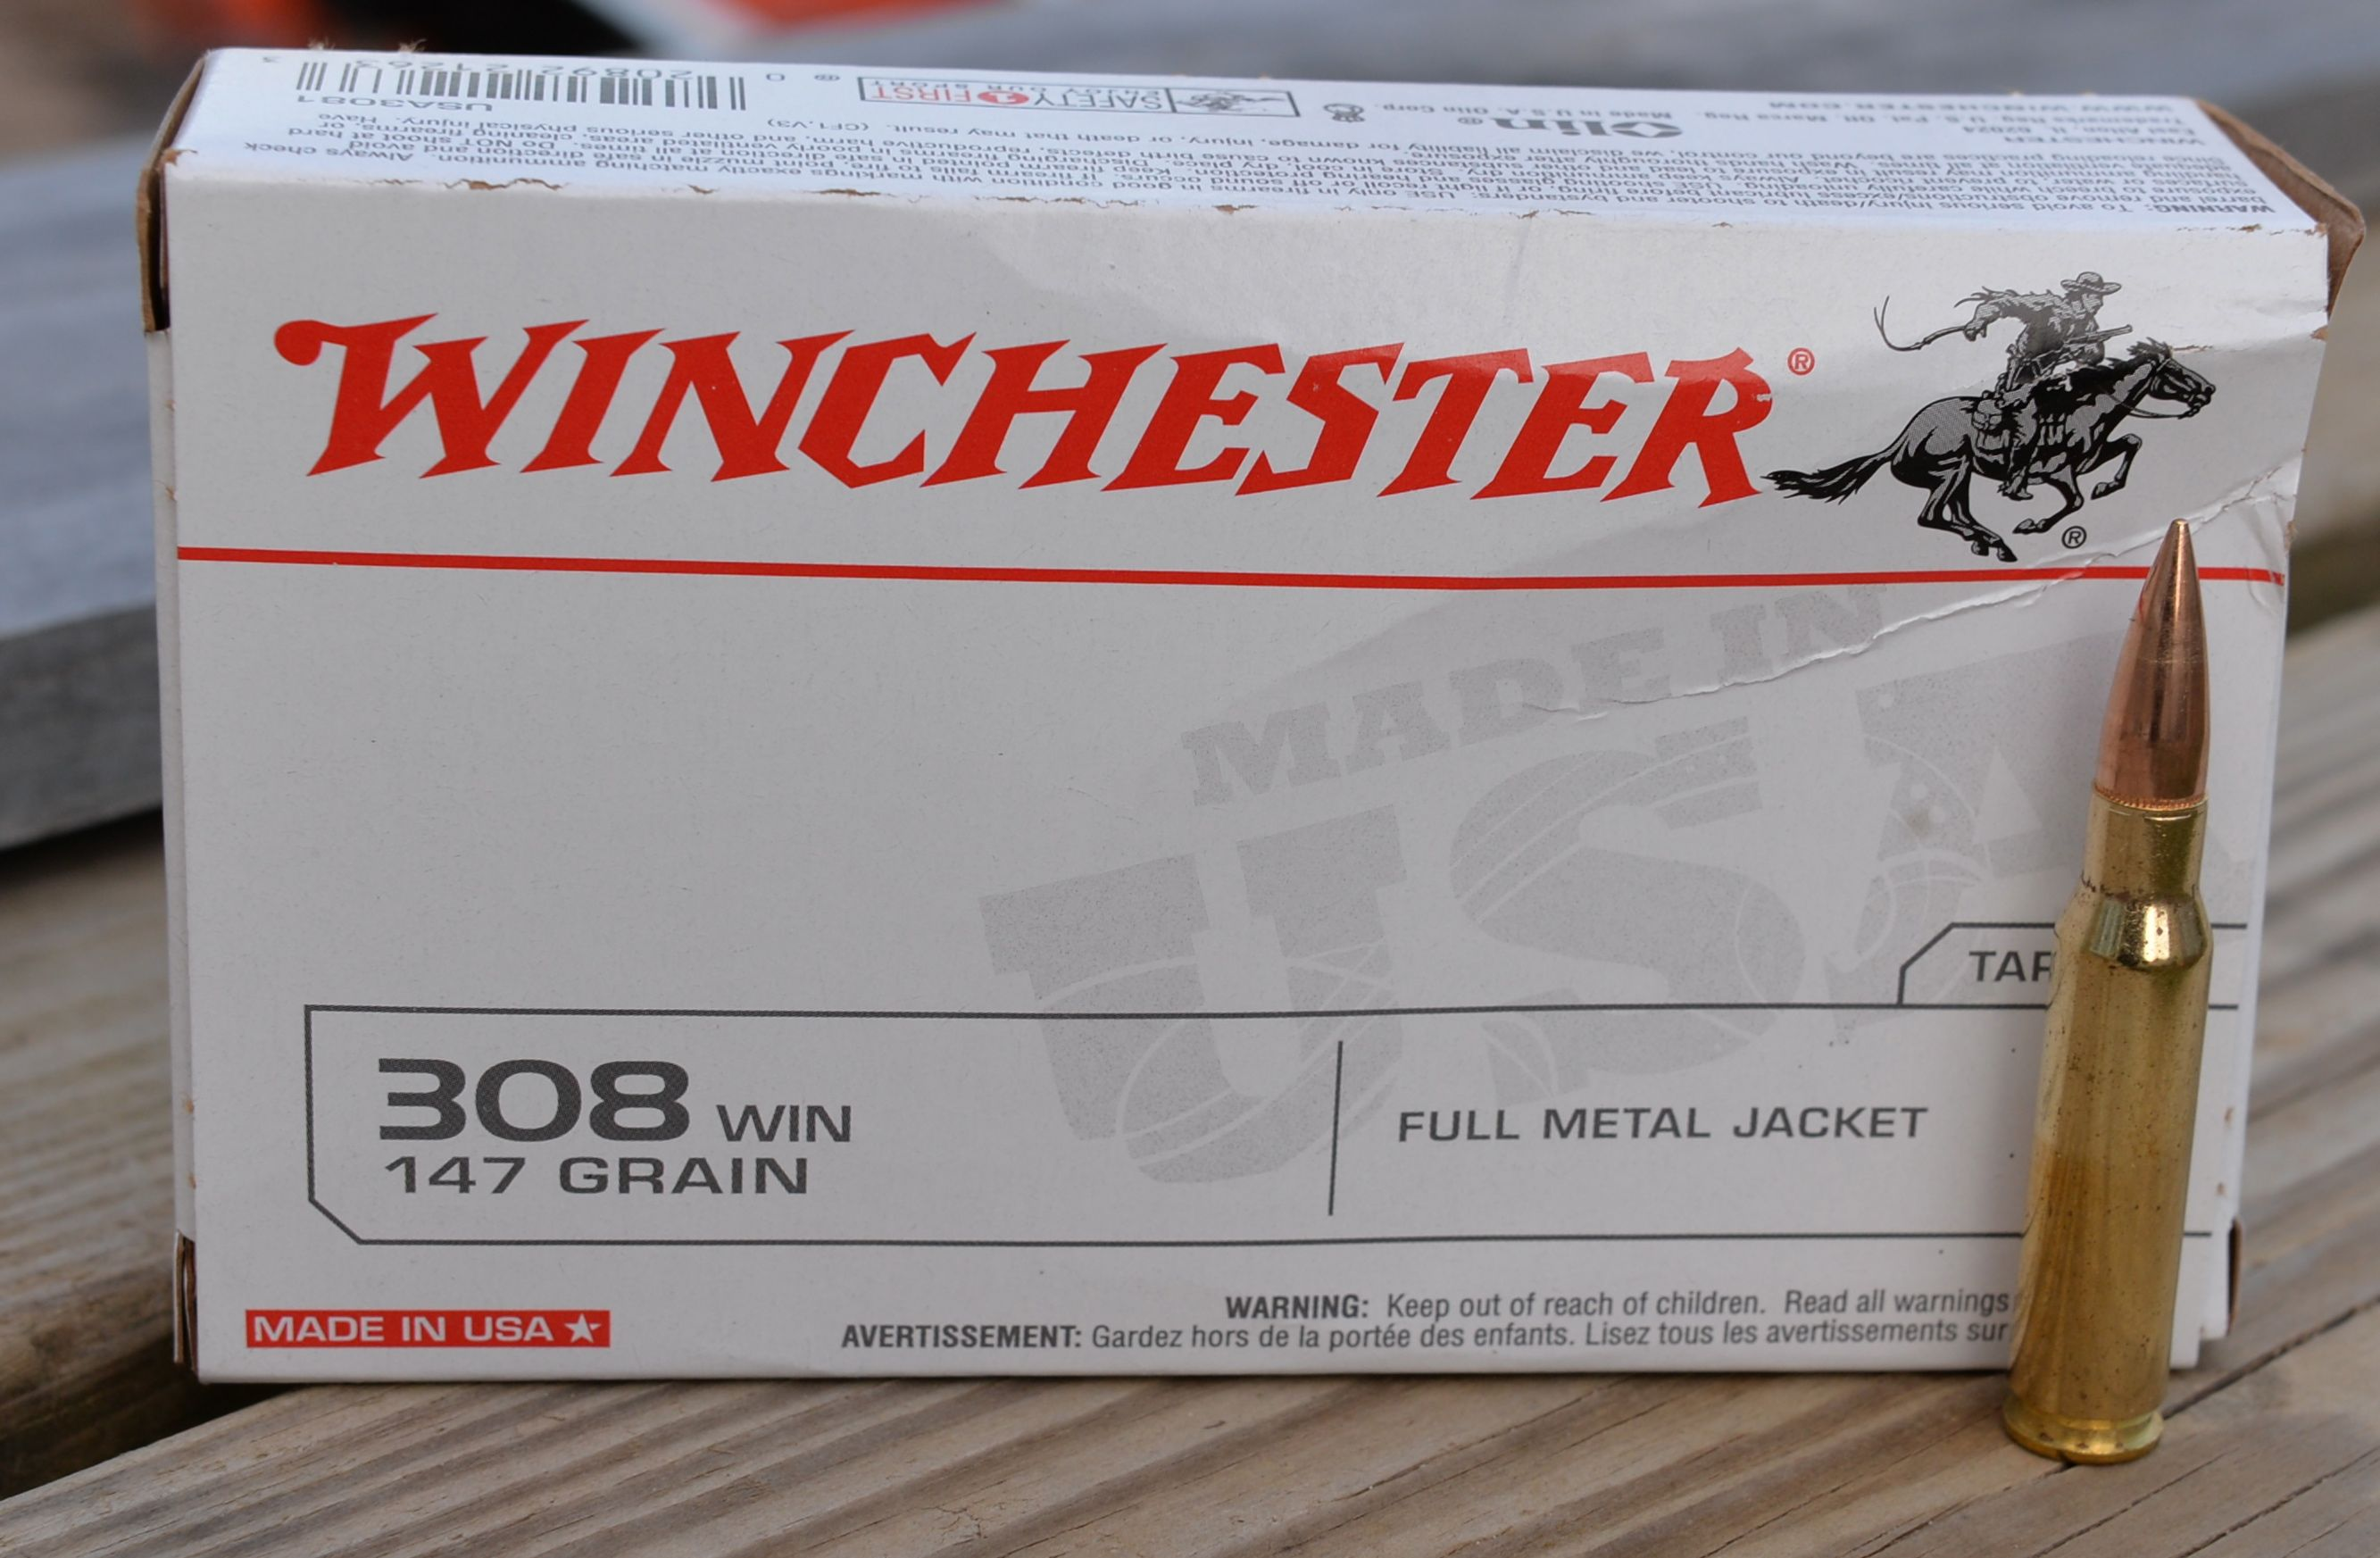 308 Winchester Barrel Length and Velocity: Winchester 147 grain FMJ